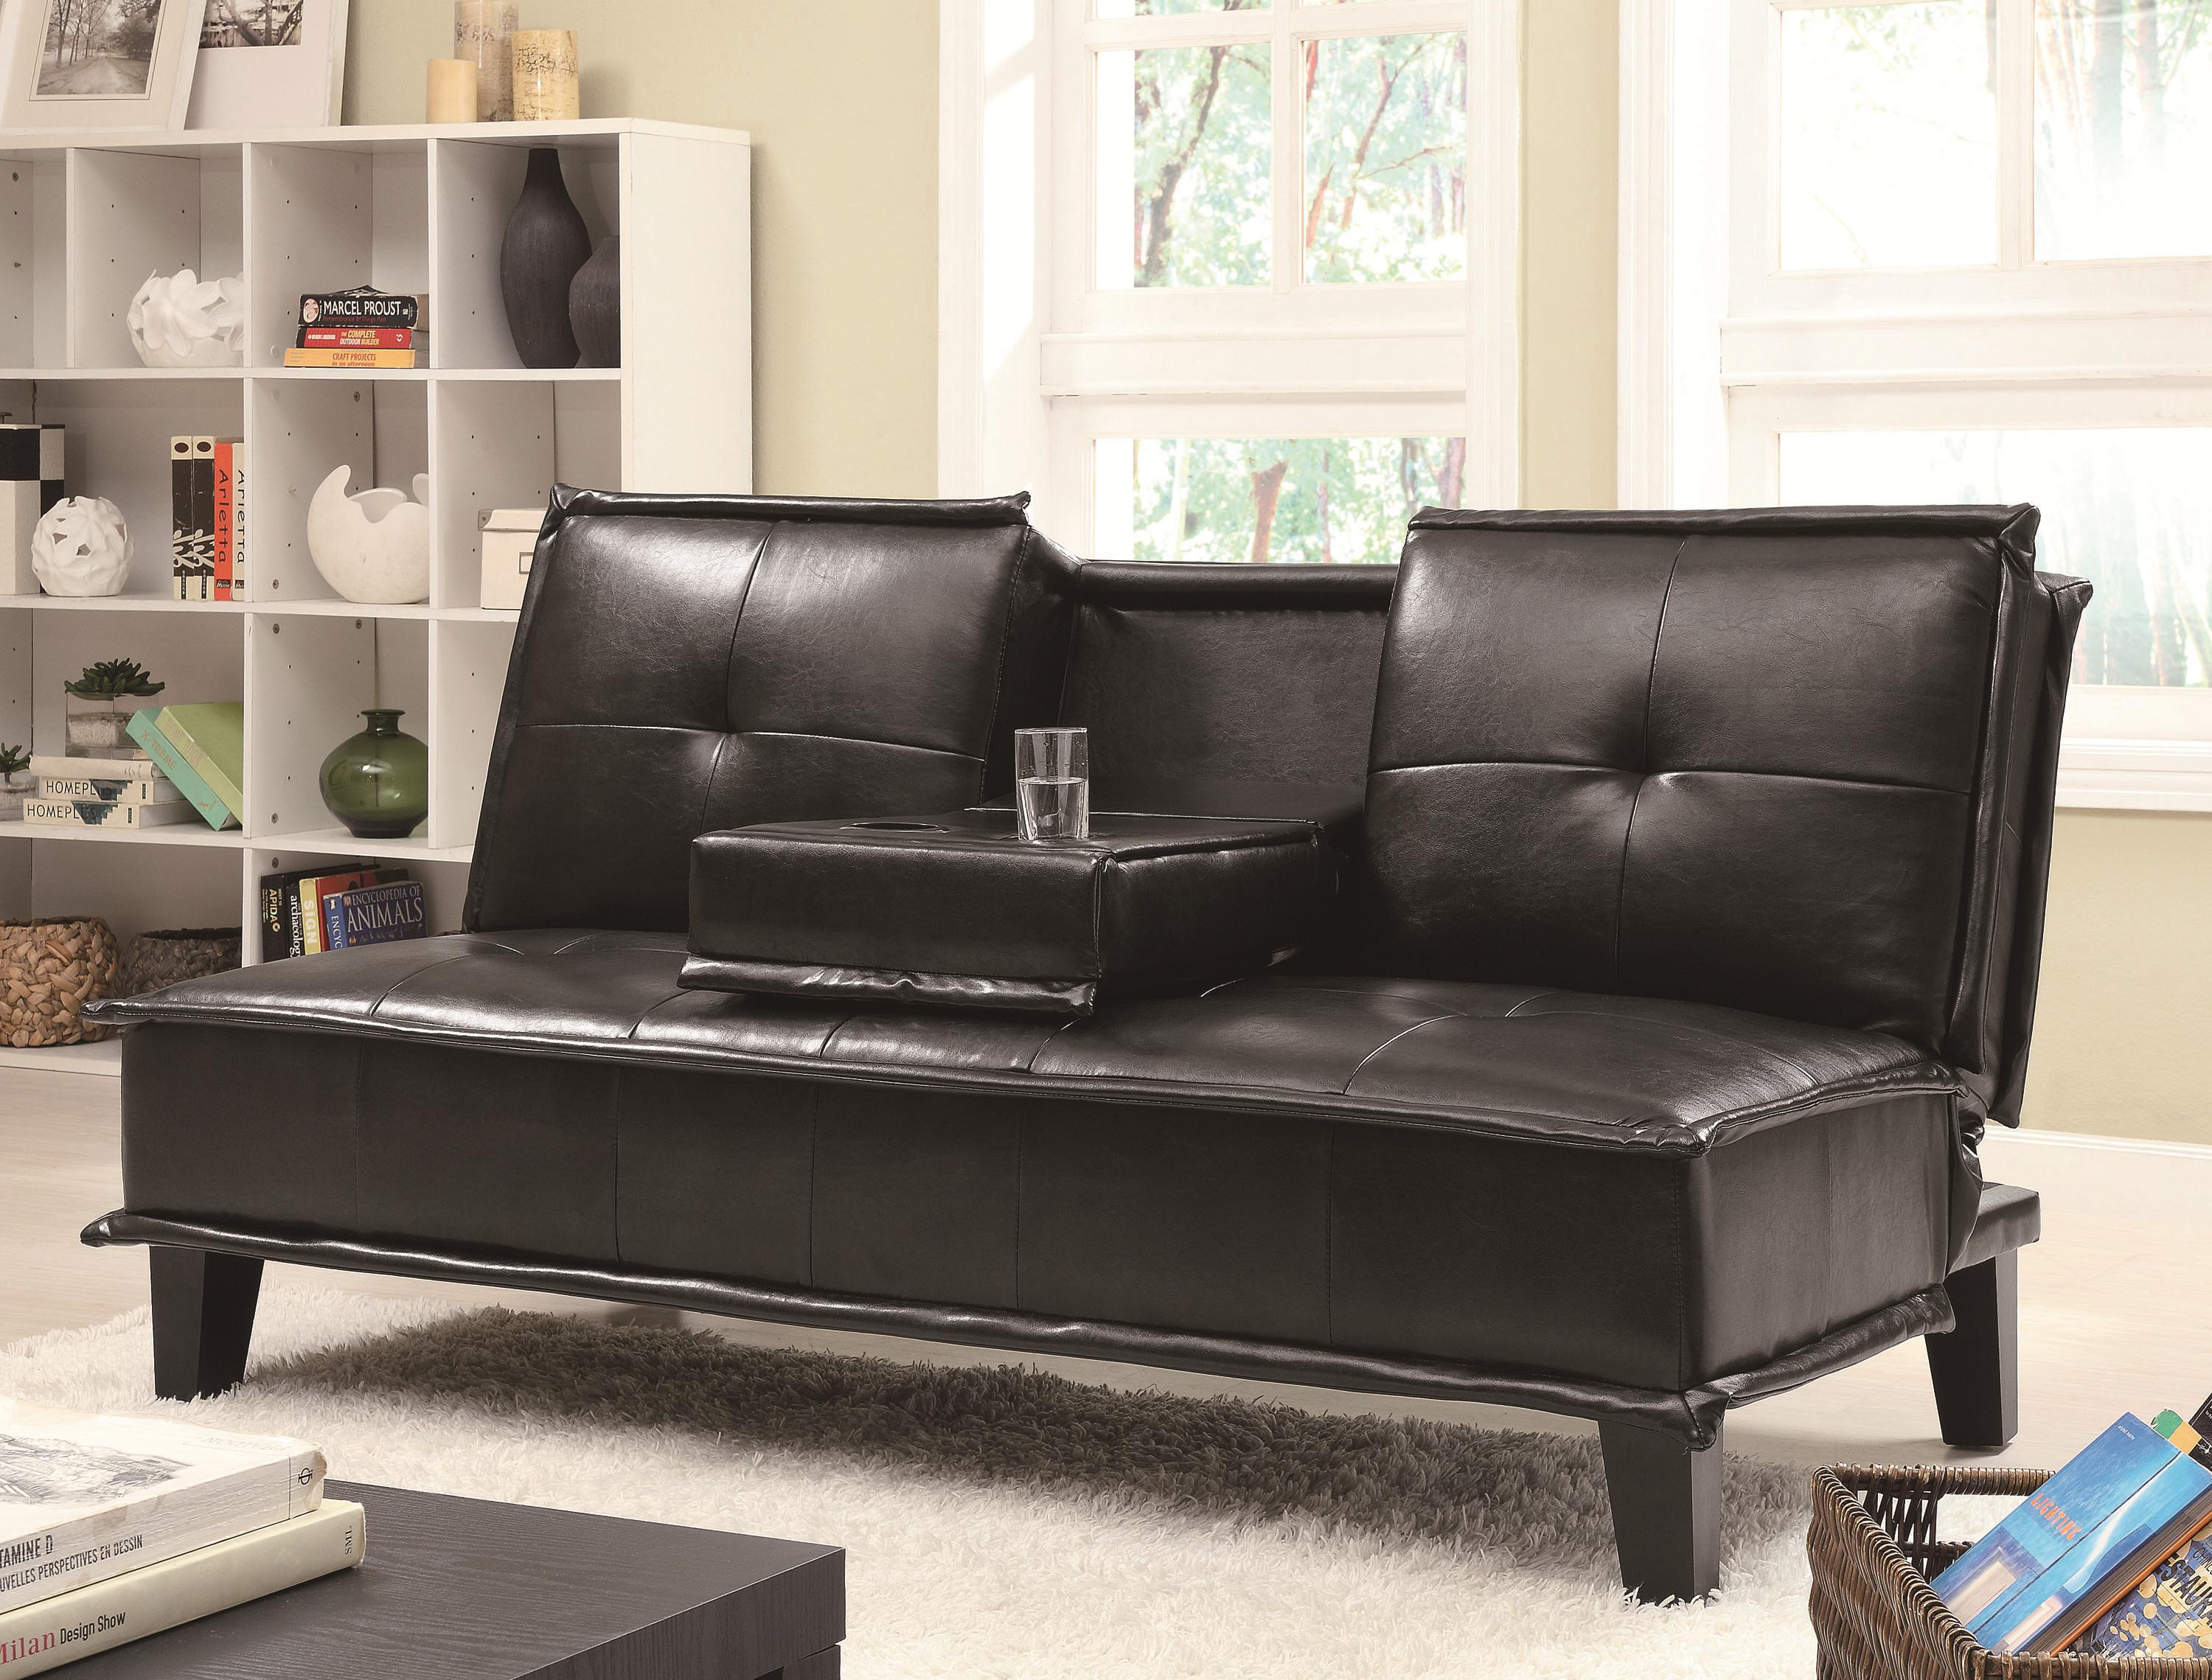 large futon piping contrast extra city shop grey white with mainstays furniture